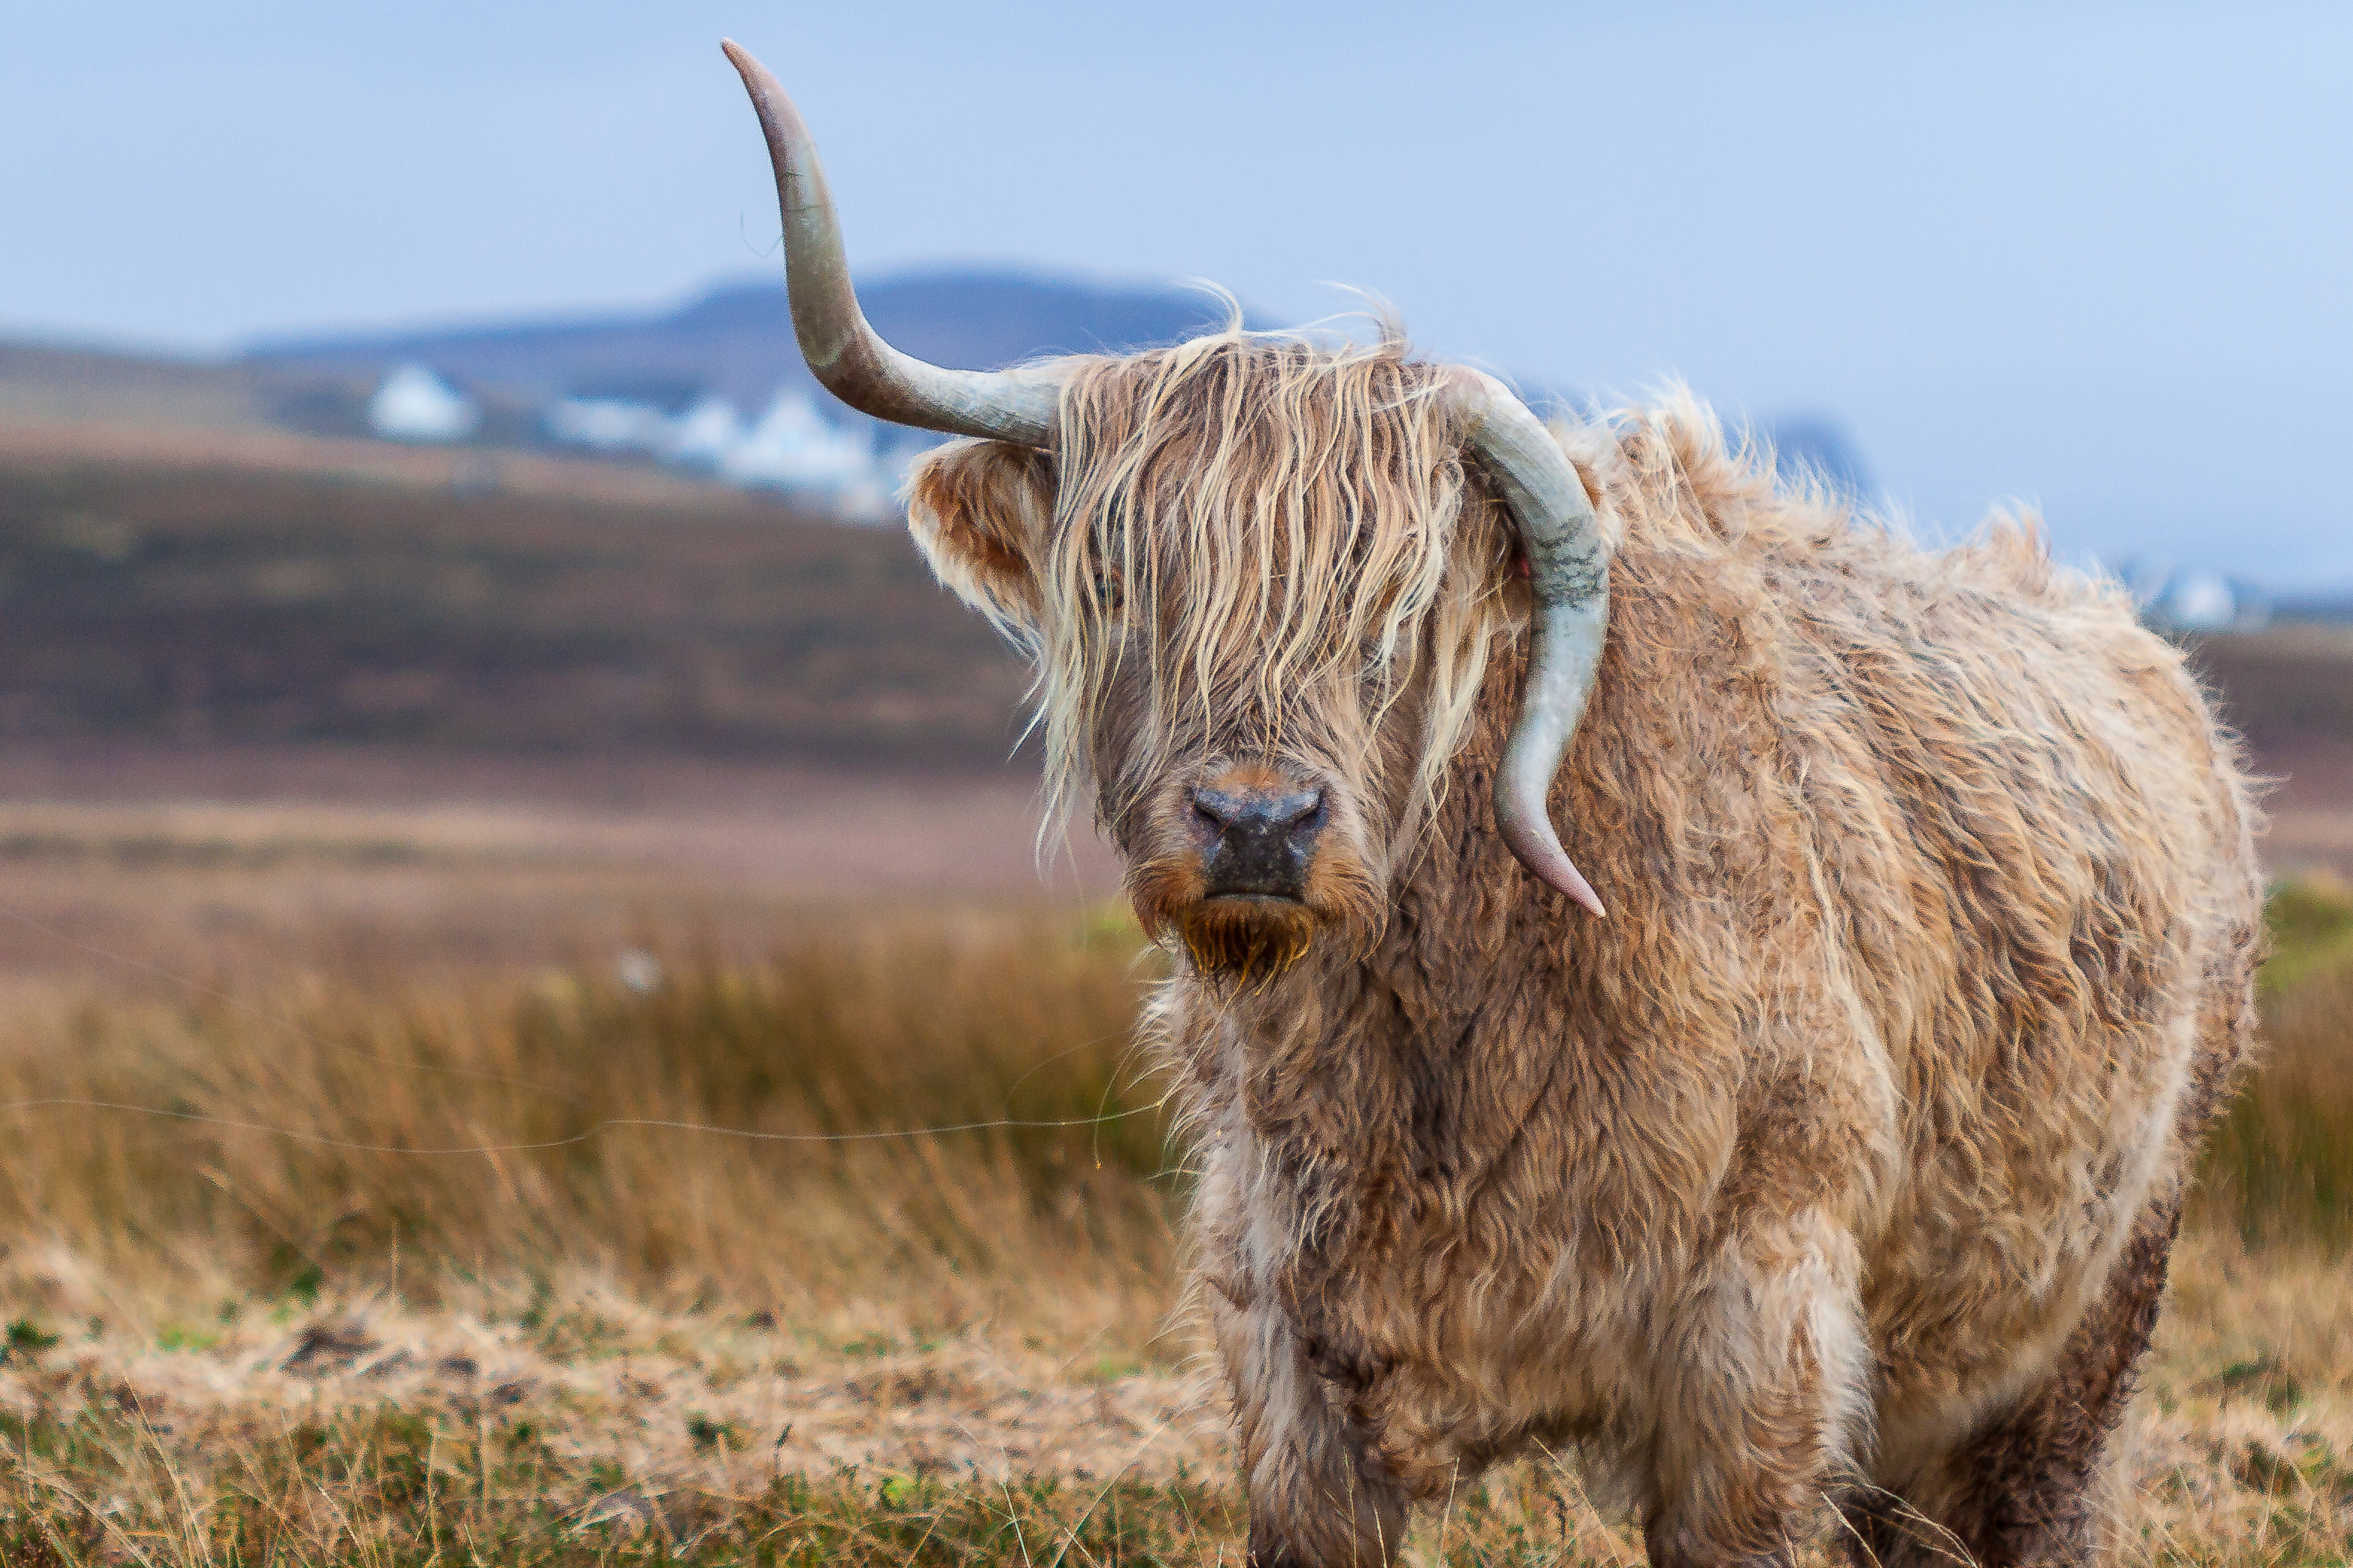 96725 download wallpaper Animals, Bull, Horns, Wool screensavers and pictures for free